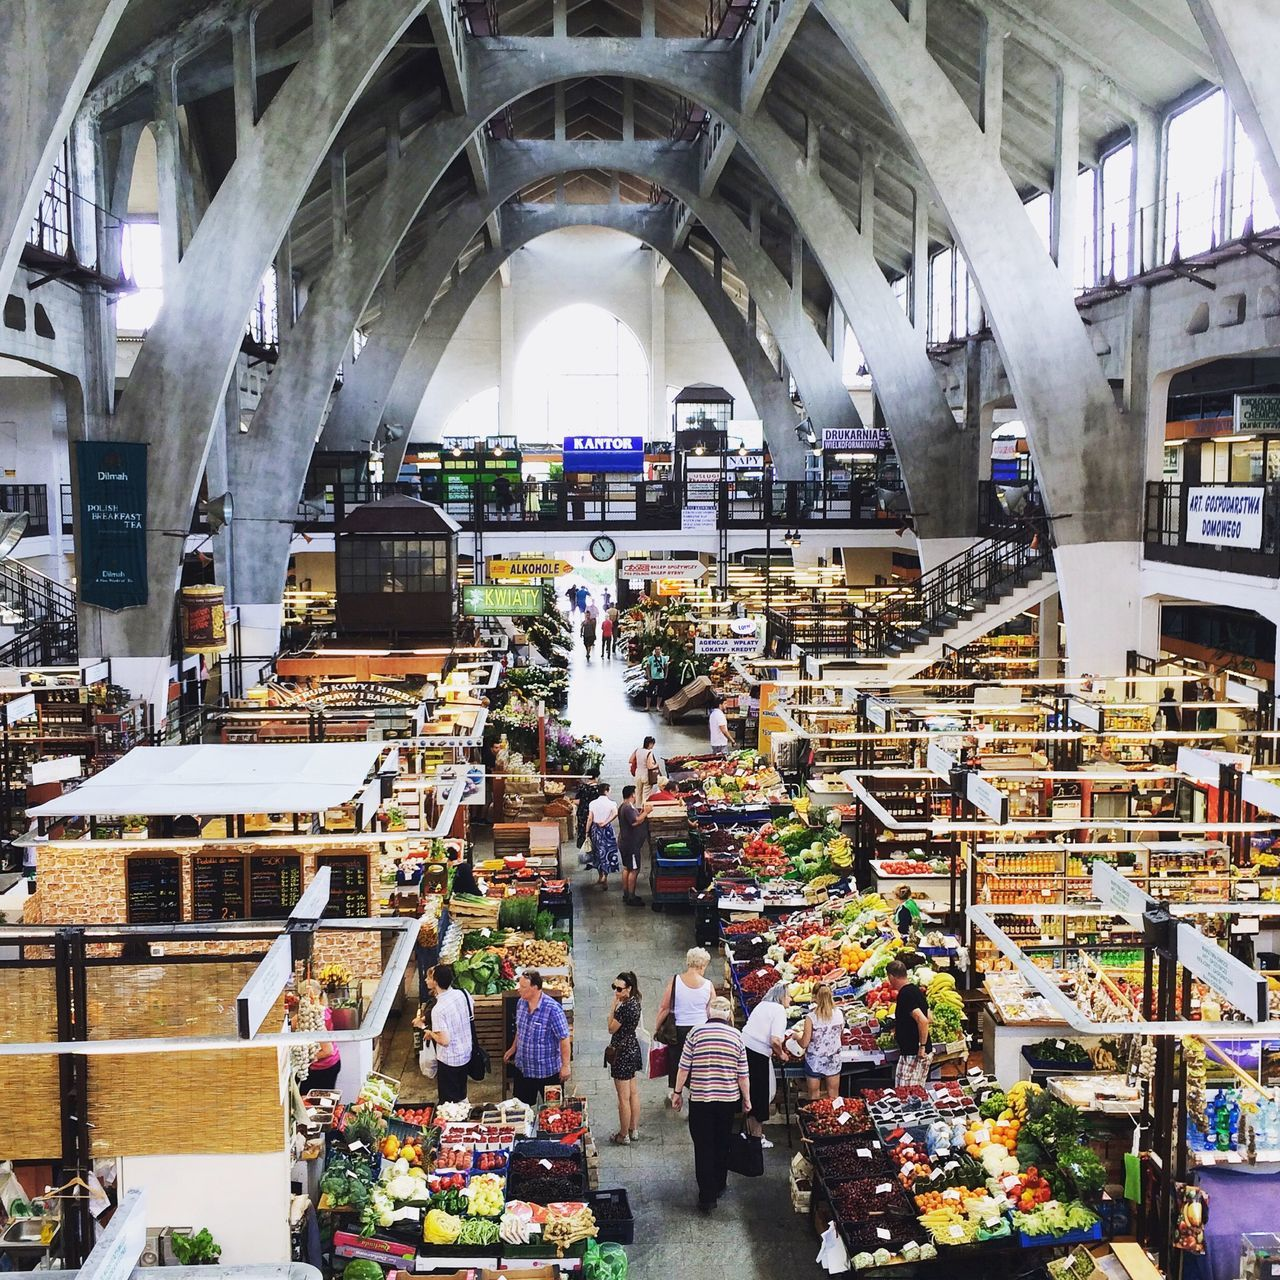 Hala Targowa. Wrocław, Poland. Photo by Tom Bland. Retail  Market Stall Market Indoors  People Bazaar Urban IPhone IPhoneography Wroclaw, Poland Wroclaw Wrocław City Street Scenes Street Scene Architecture Europe The City Light Hala Targowa Indoor Market Covered Market Shopping ♡ European Capital Of Culture Brutalism Brutalist Architecture